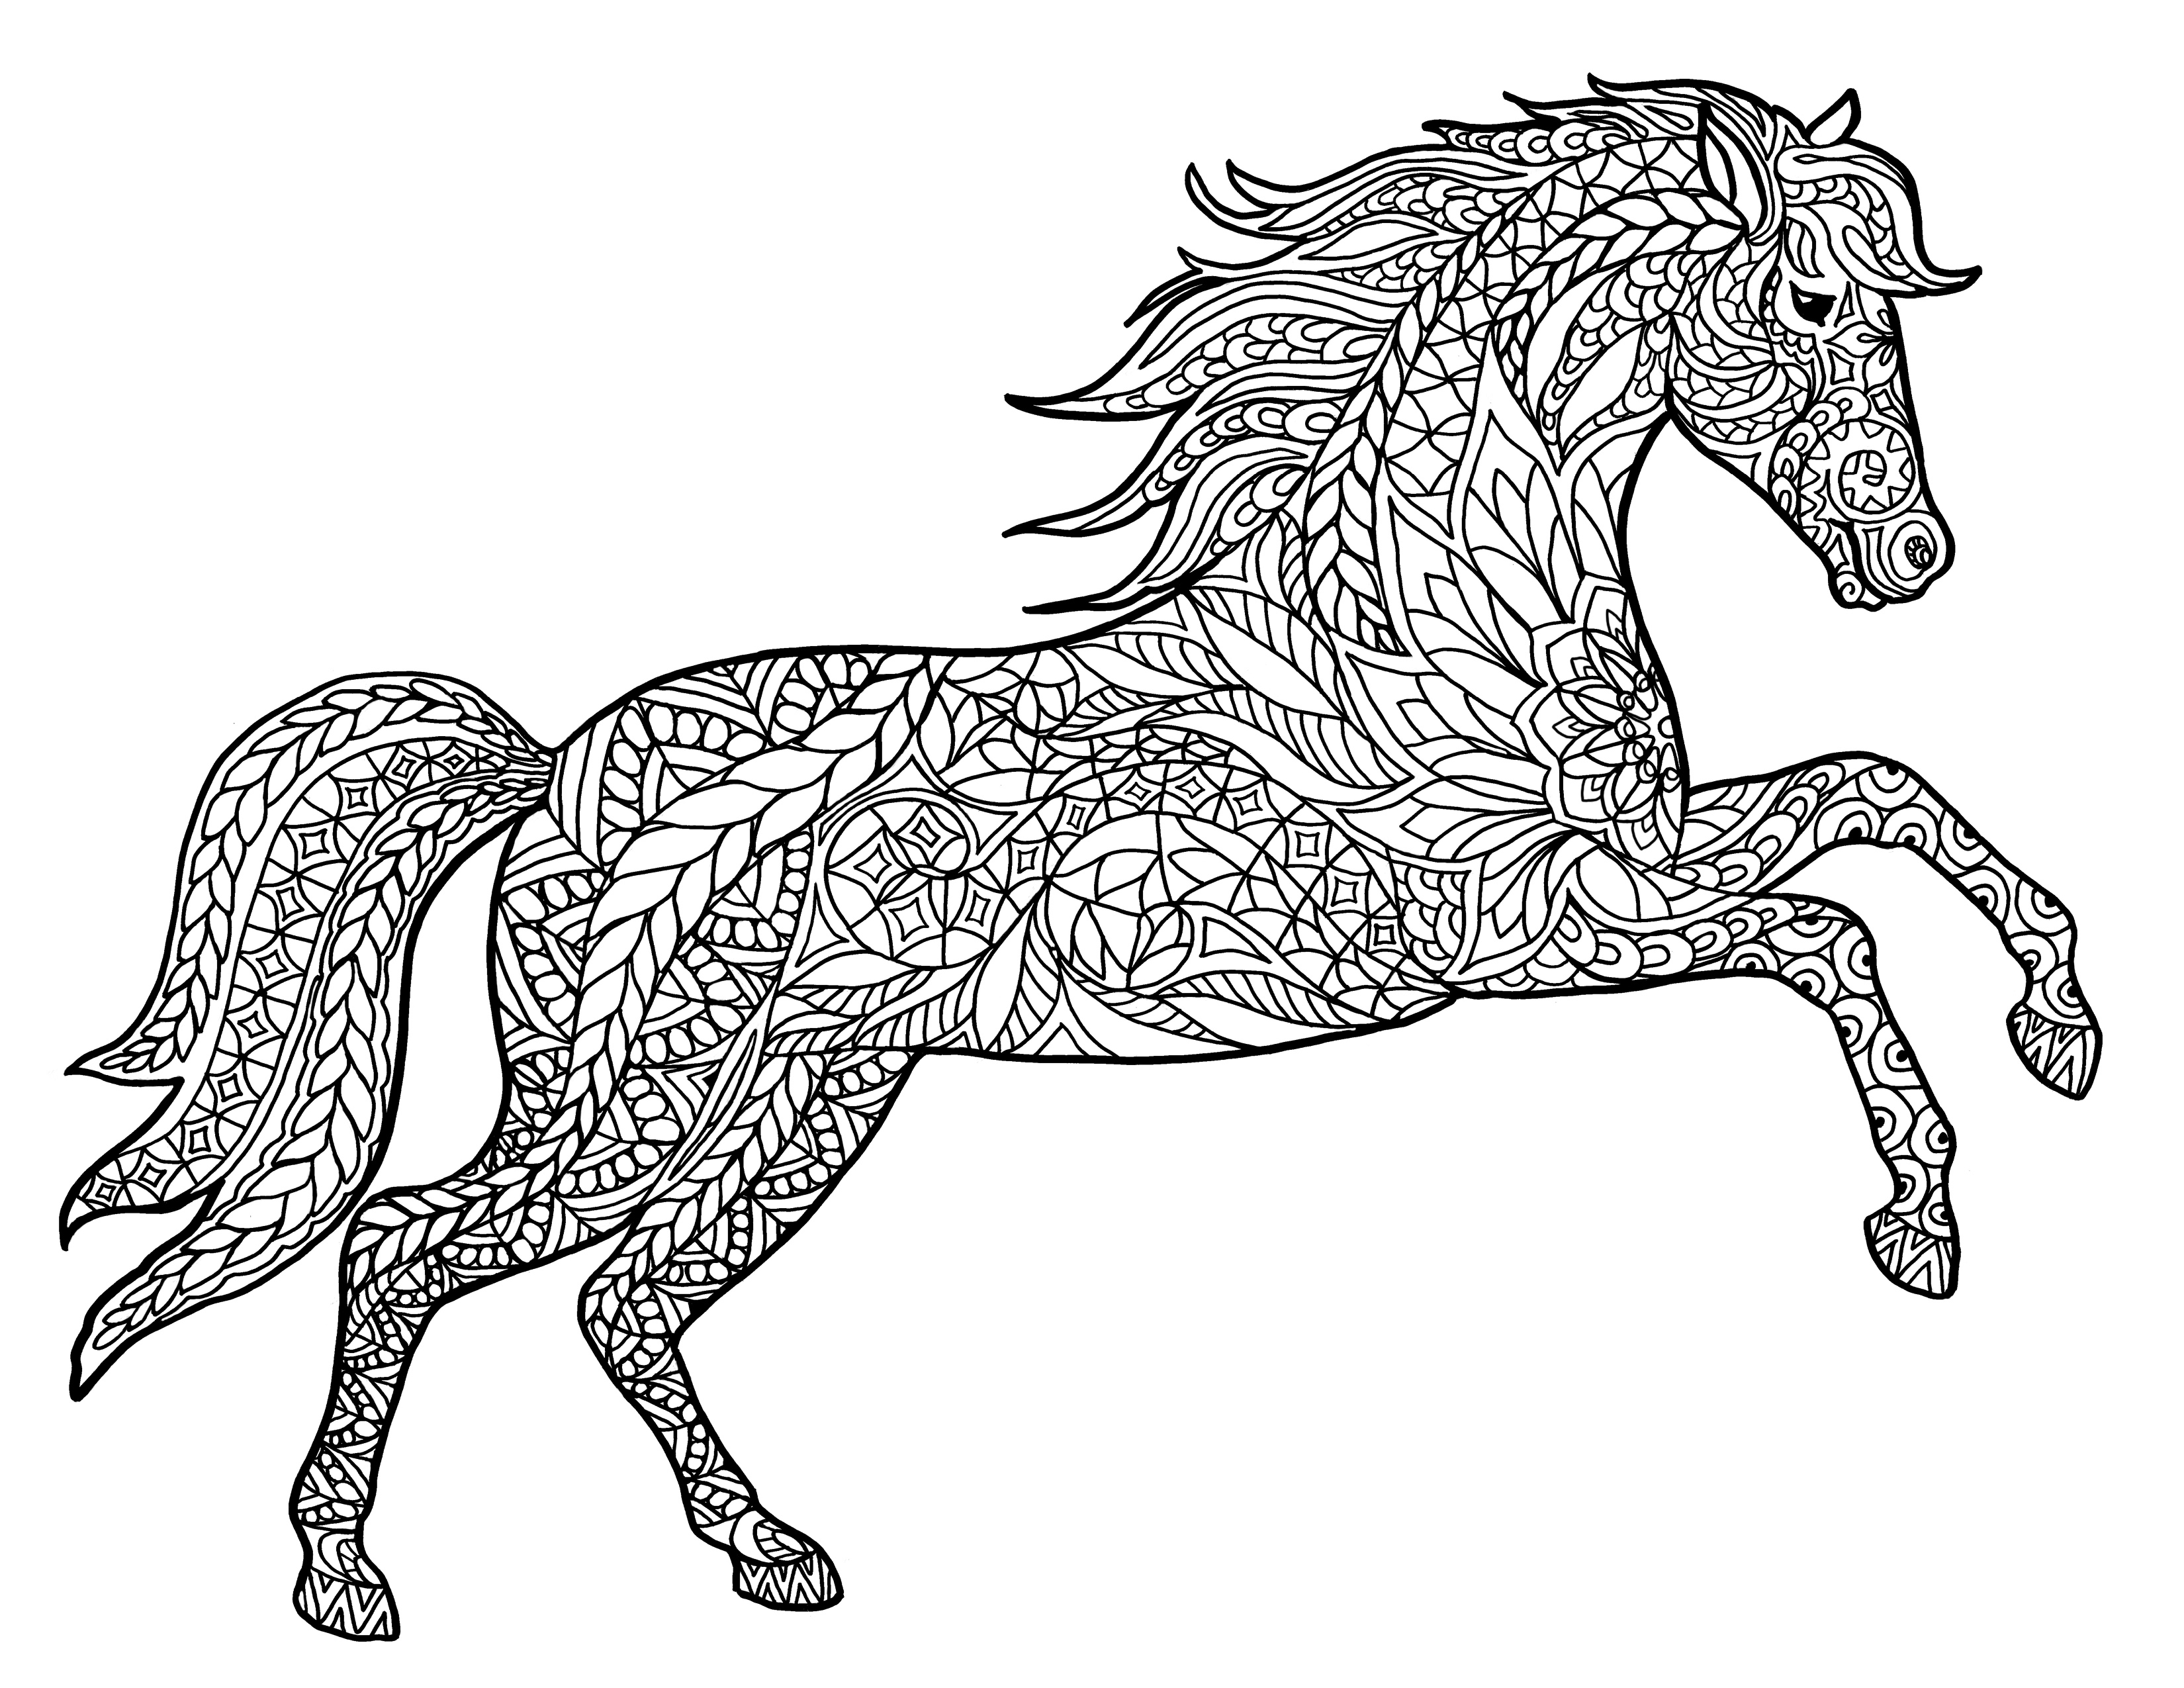 coloring pages of horses to print majestic horse horses adult coloring pages horses print pages of to coloring